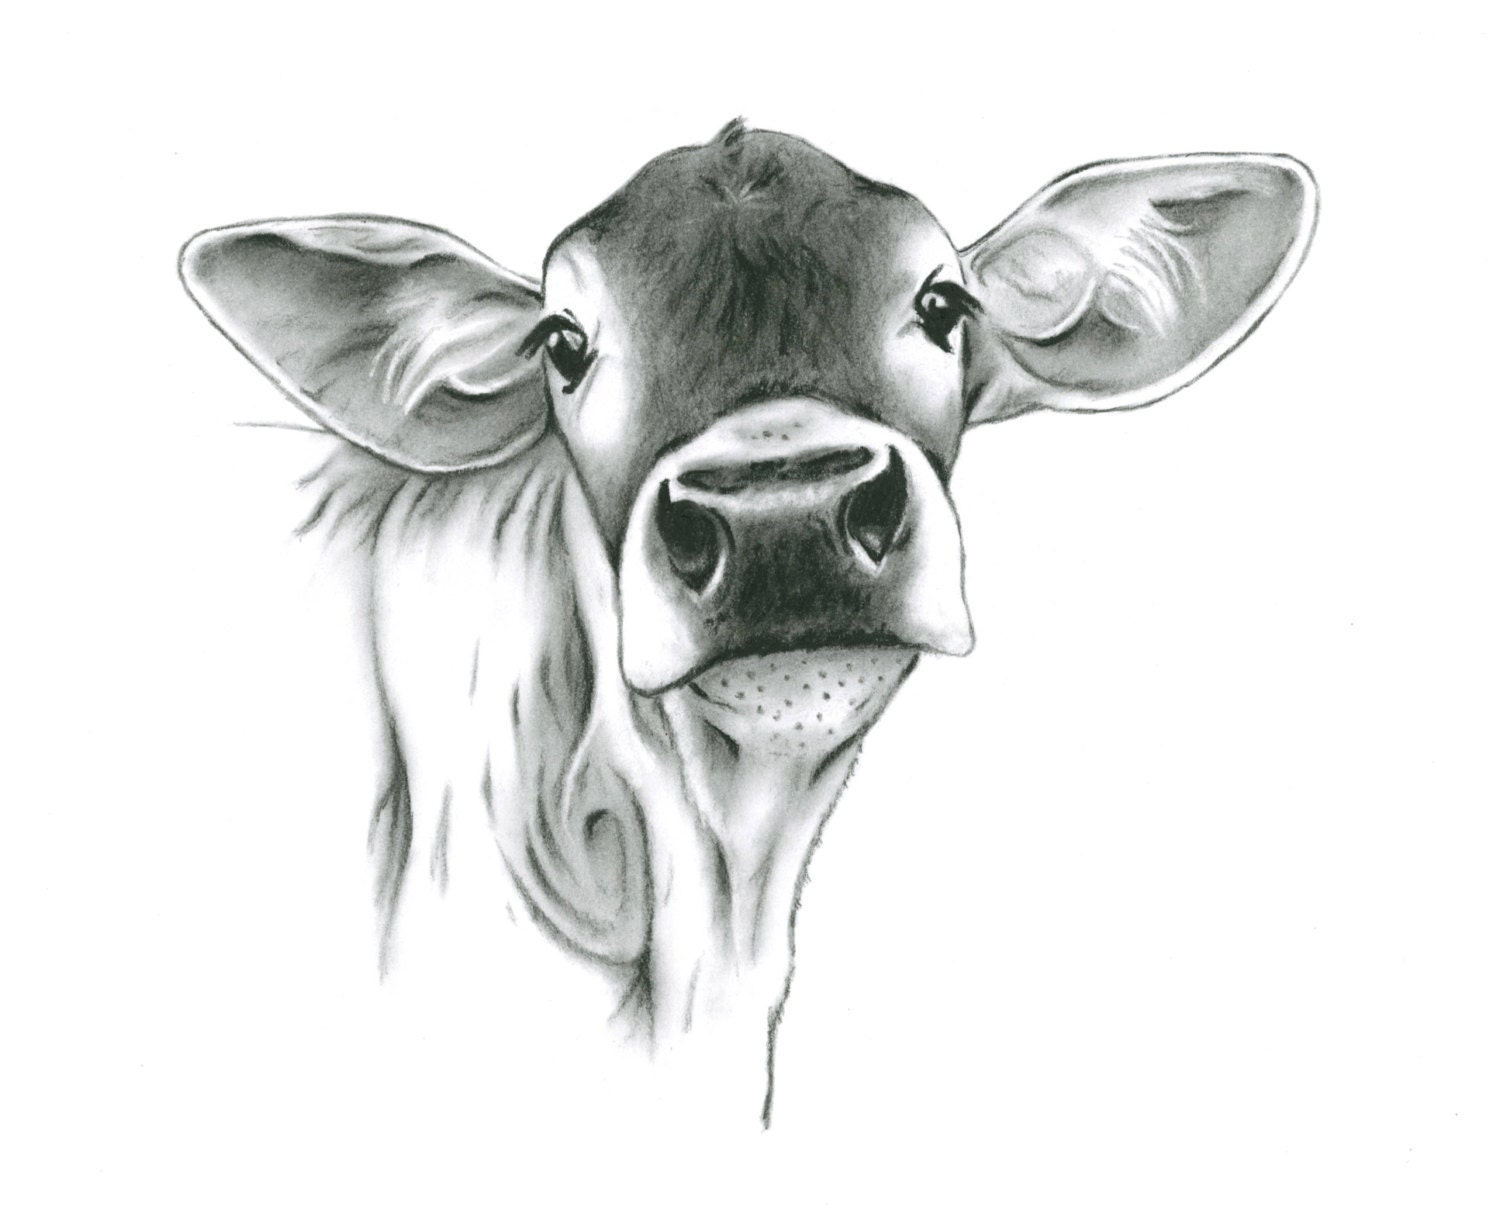 farmhouse art cow art charcoal drawing print. Black Bedroom Furniture Sets. Home Design Ideas